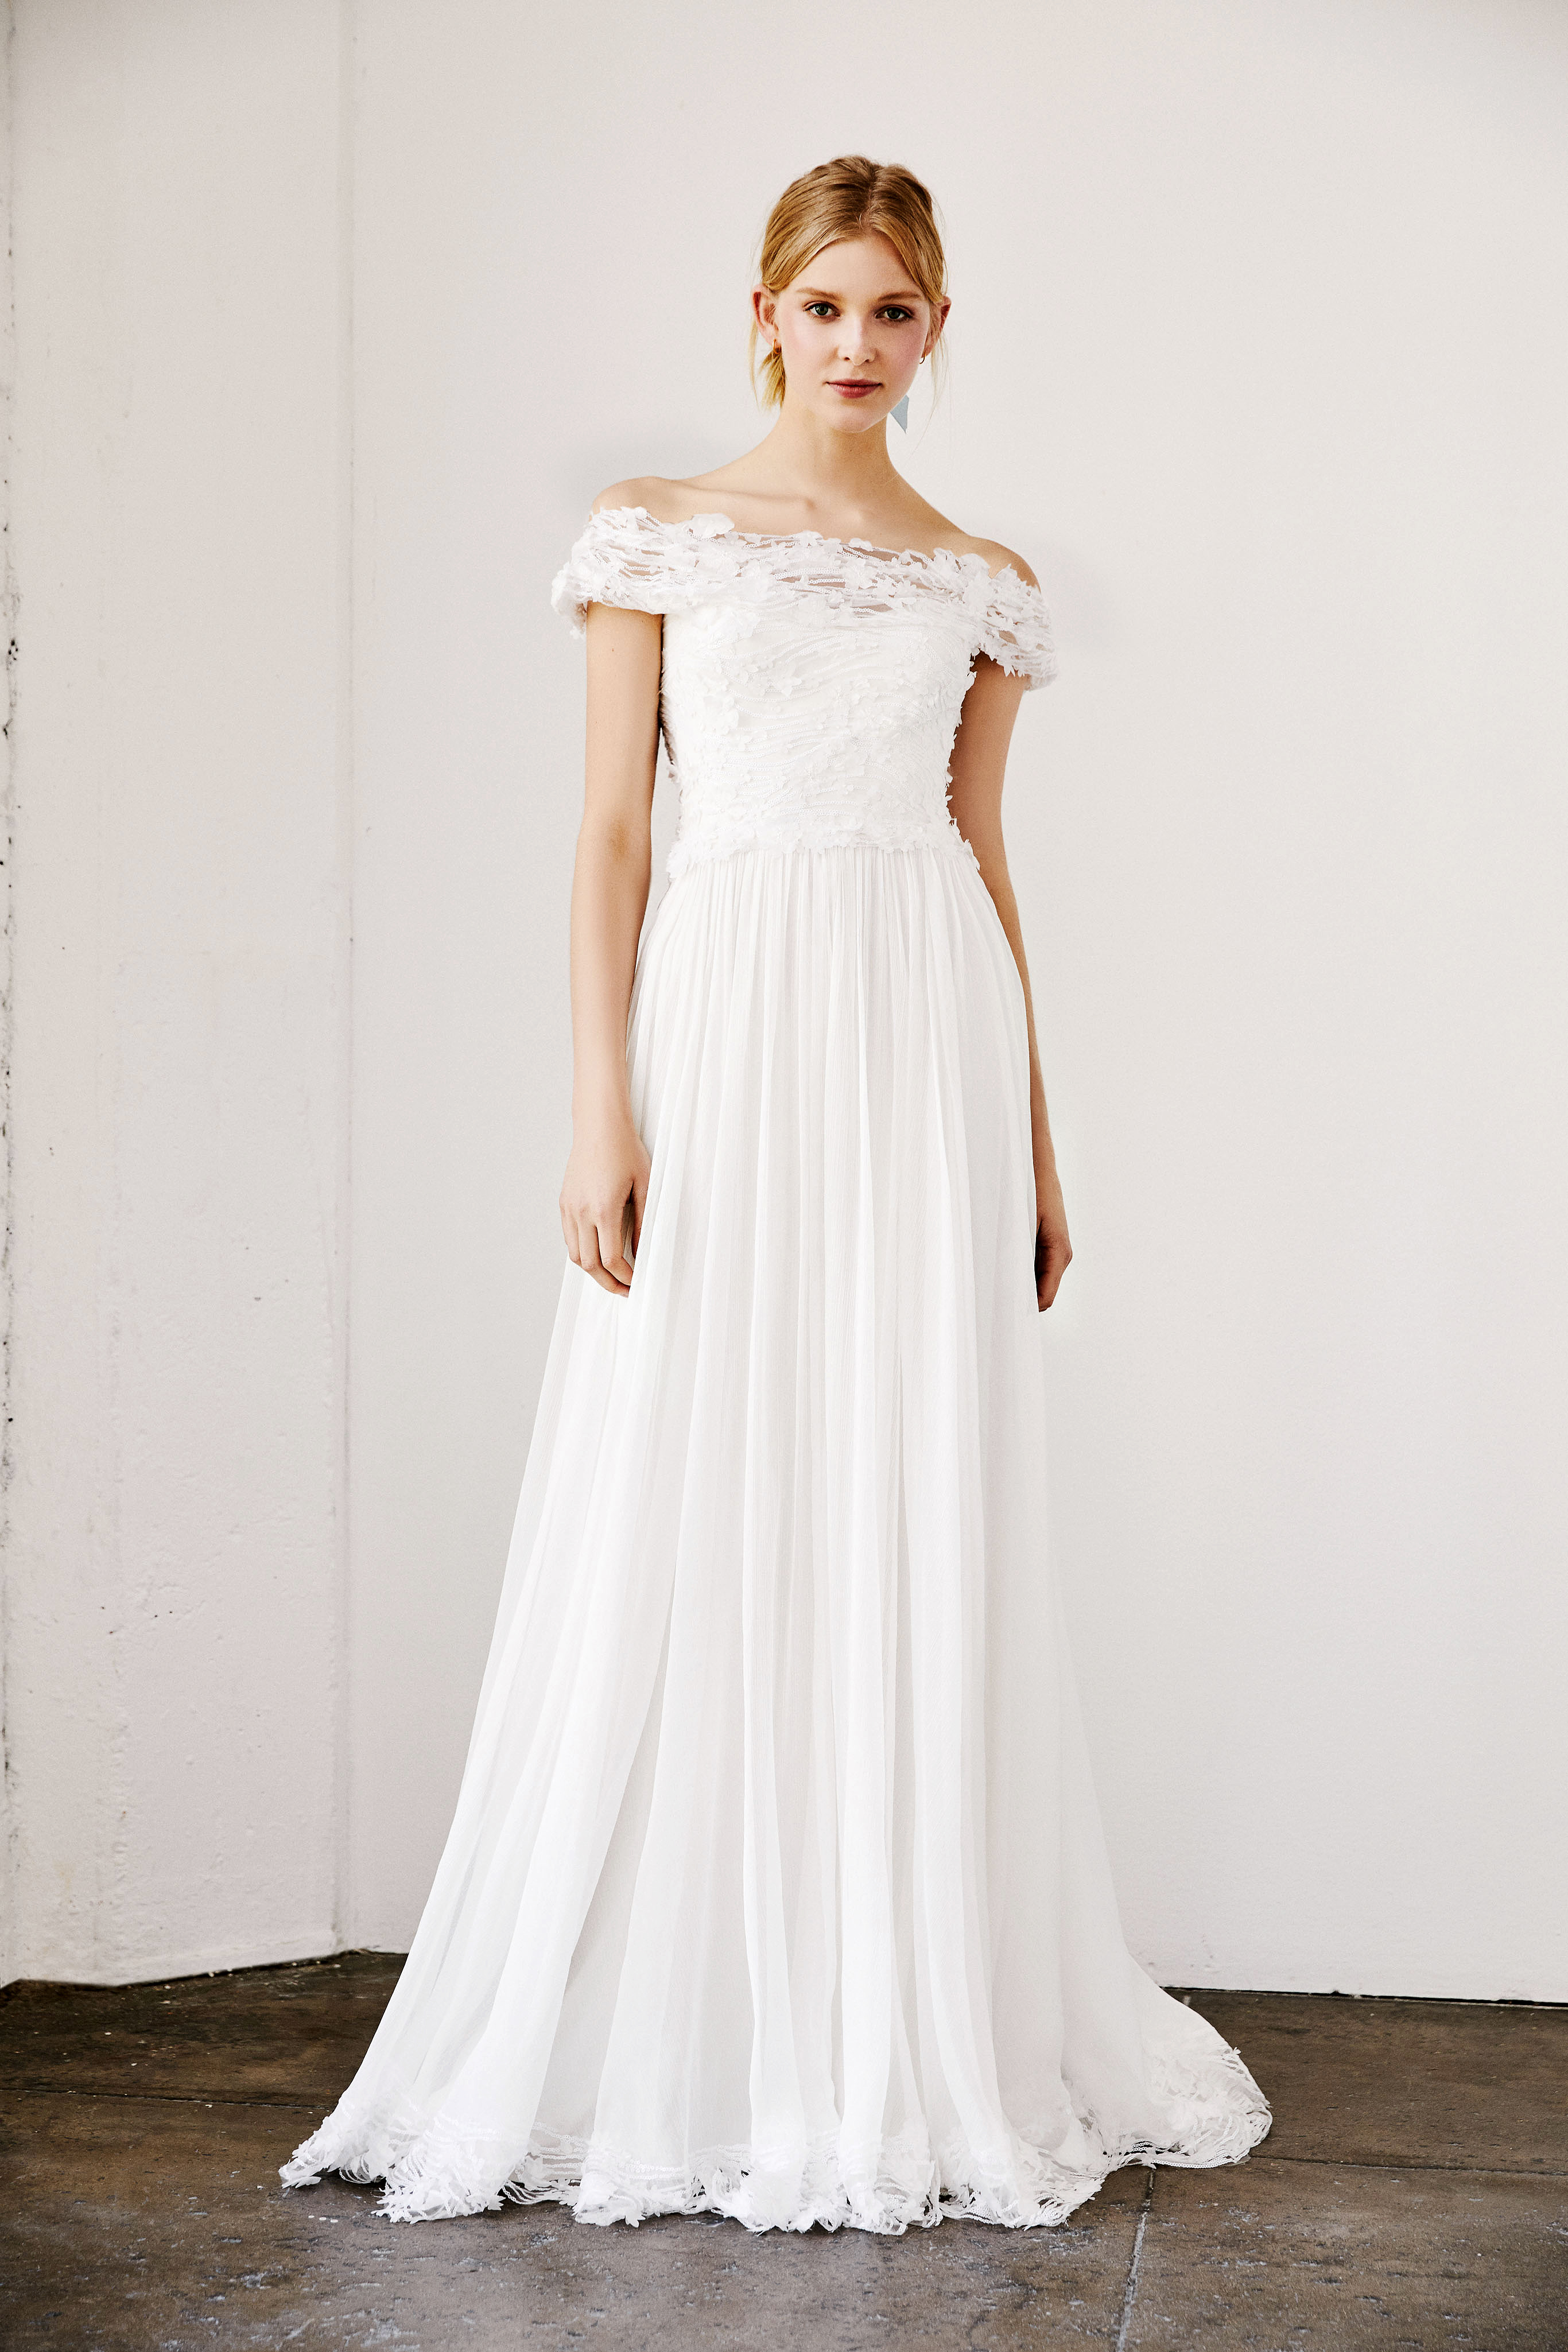 tadashi shoji wedding dress spring 2019 off the shoulder a-line